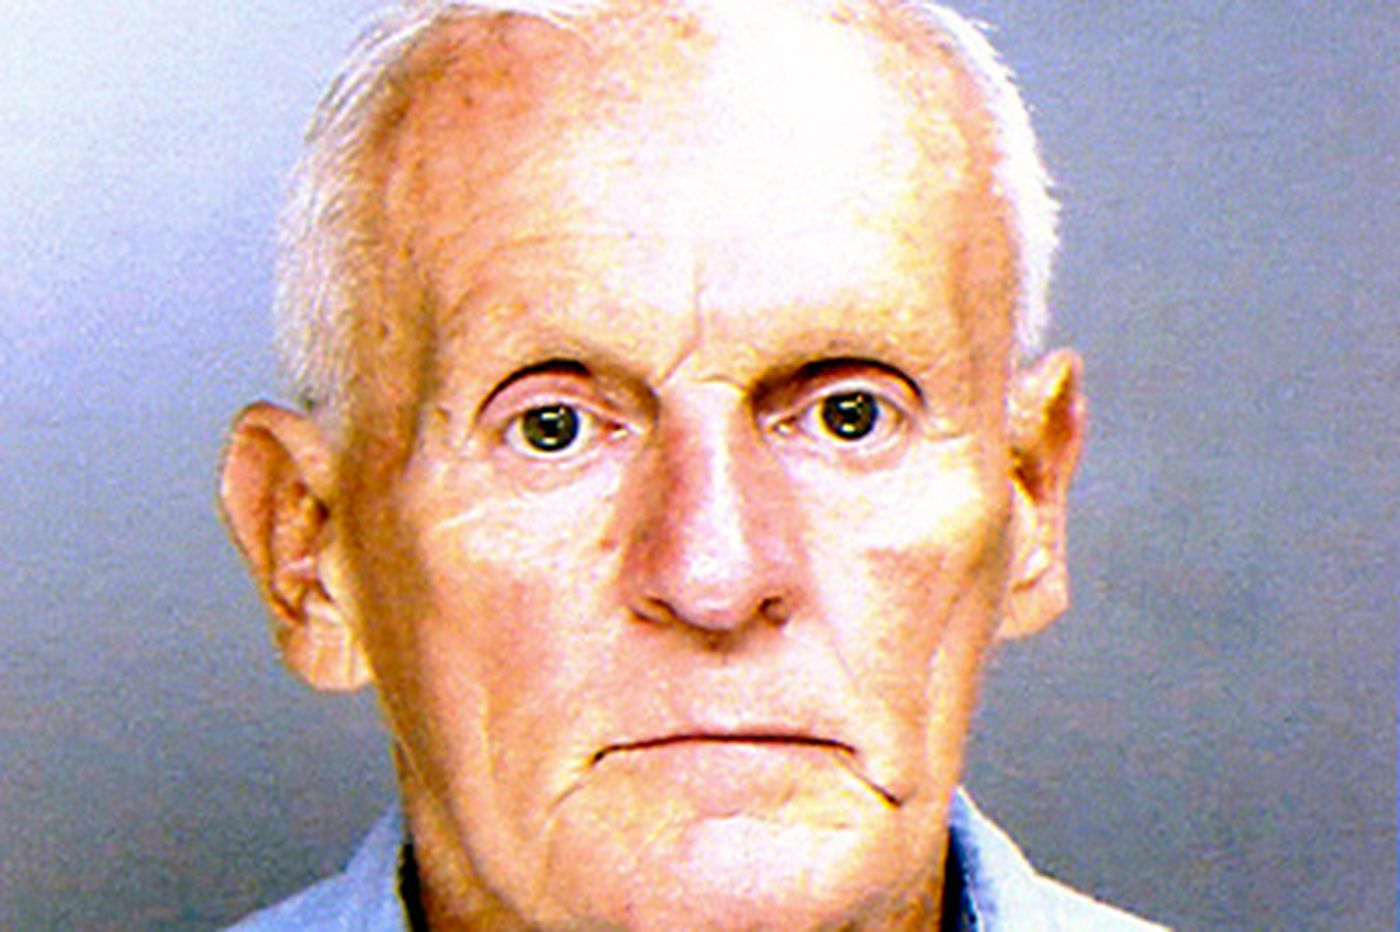 The Pulse: He did his time but he's still behind bars